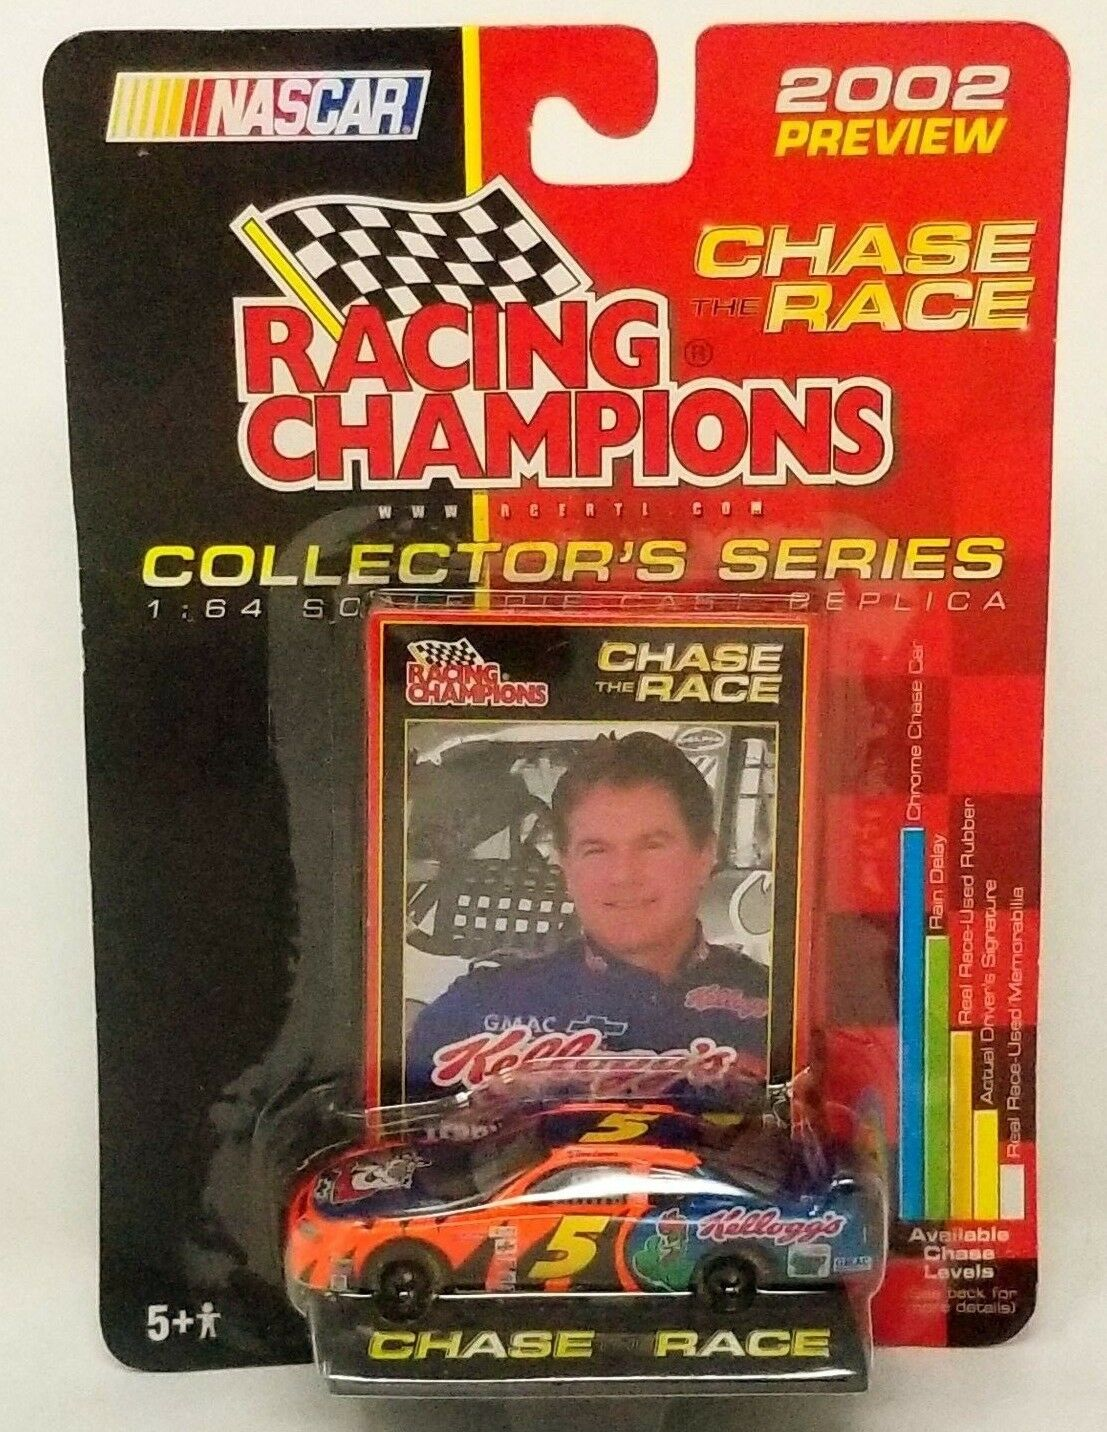 Nascar racing champions race car 1 64 scale Terry Labonte with one extra car